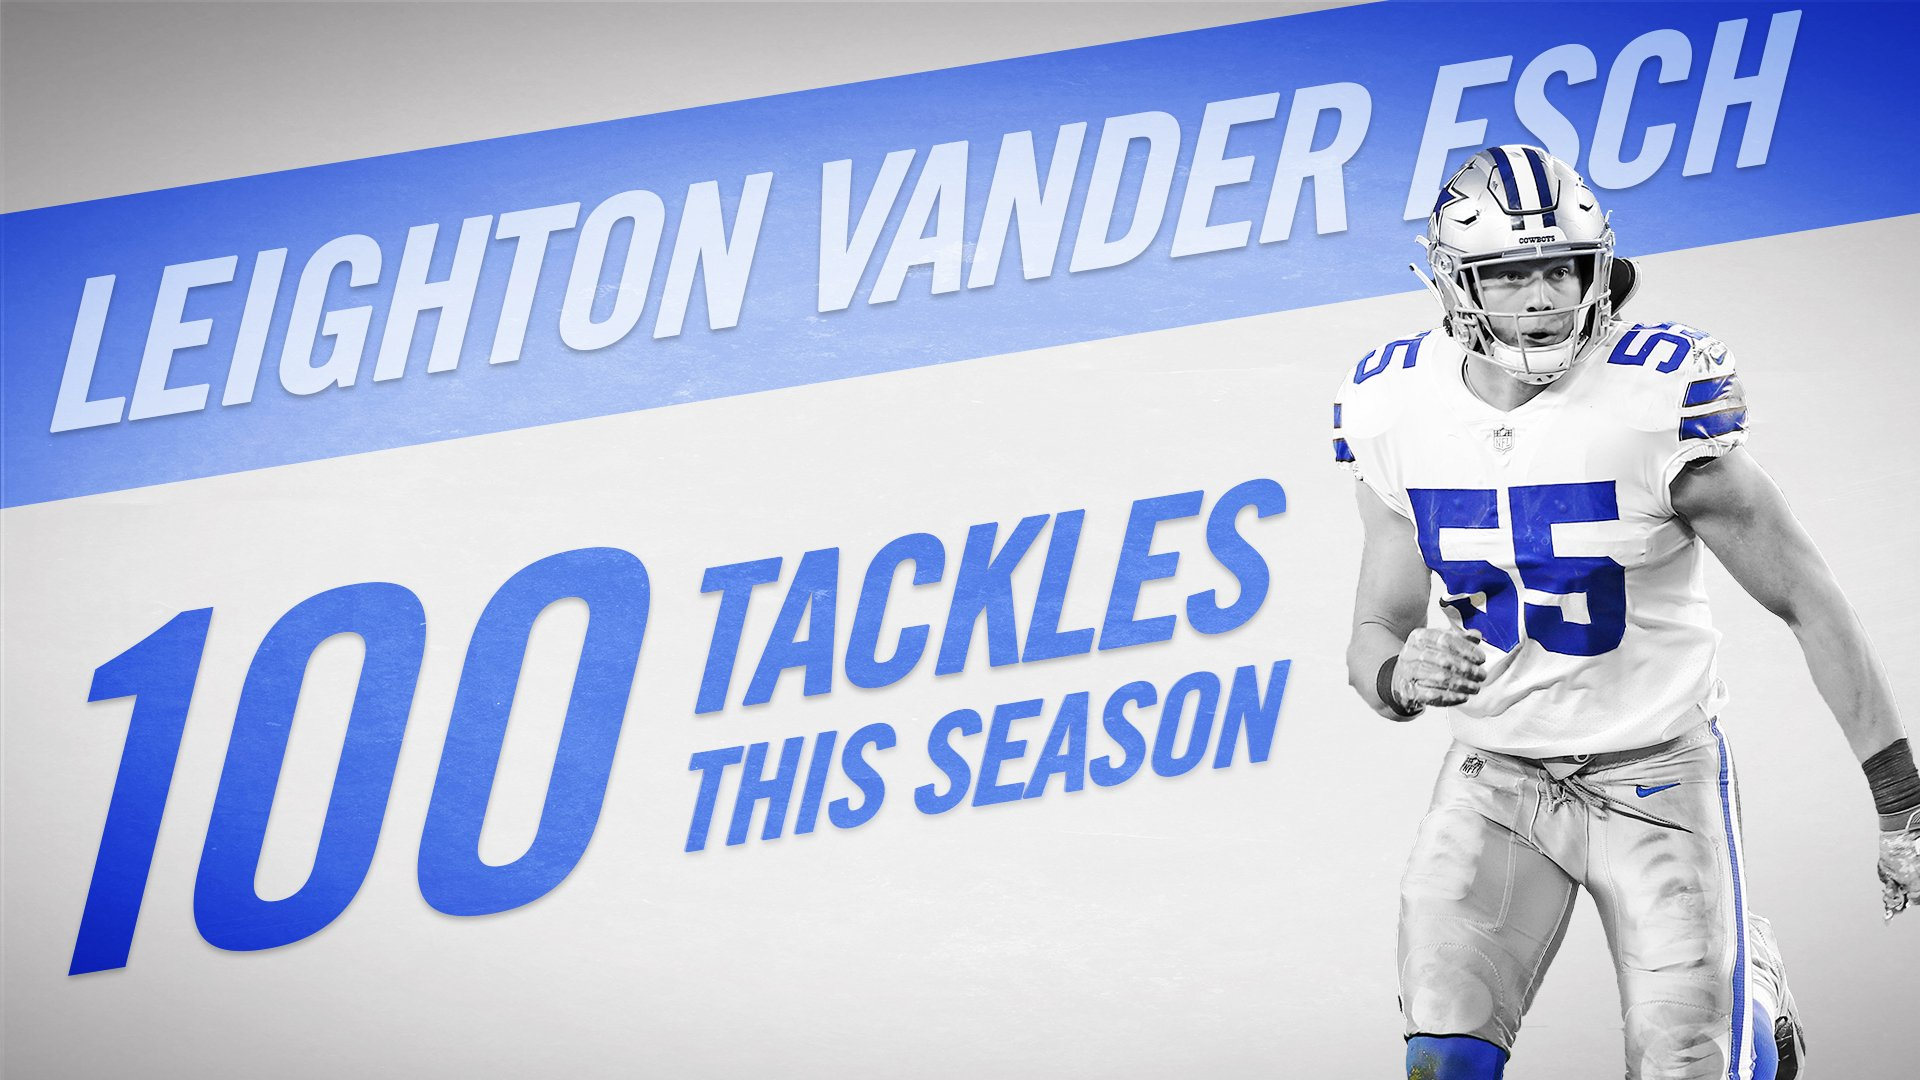 .@VanderEsch38 becomes the sixth #DallasCowboys rookie to post �� tackles https://t.co/IUndGKuO69